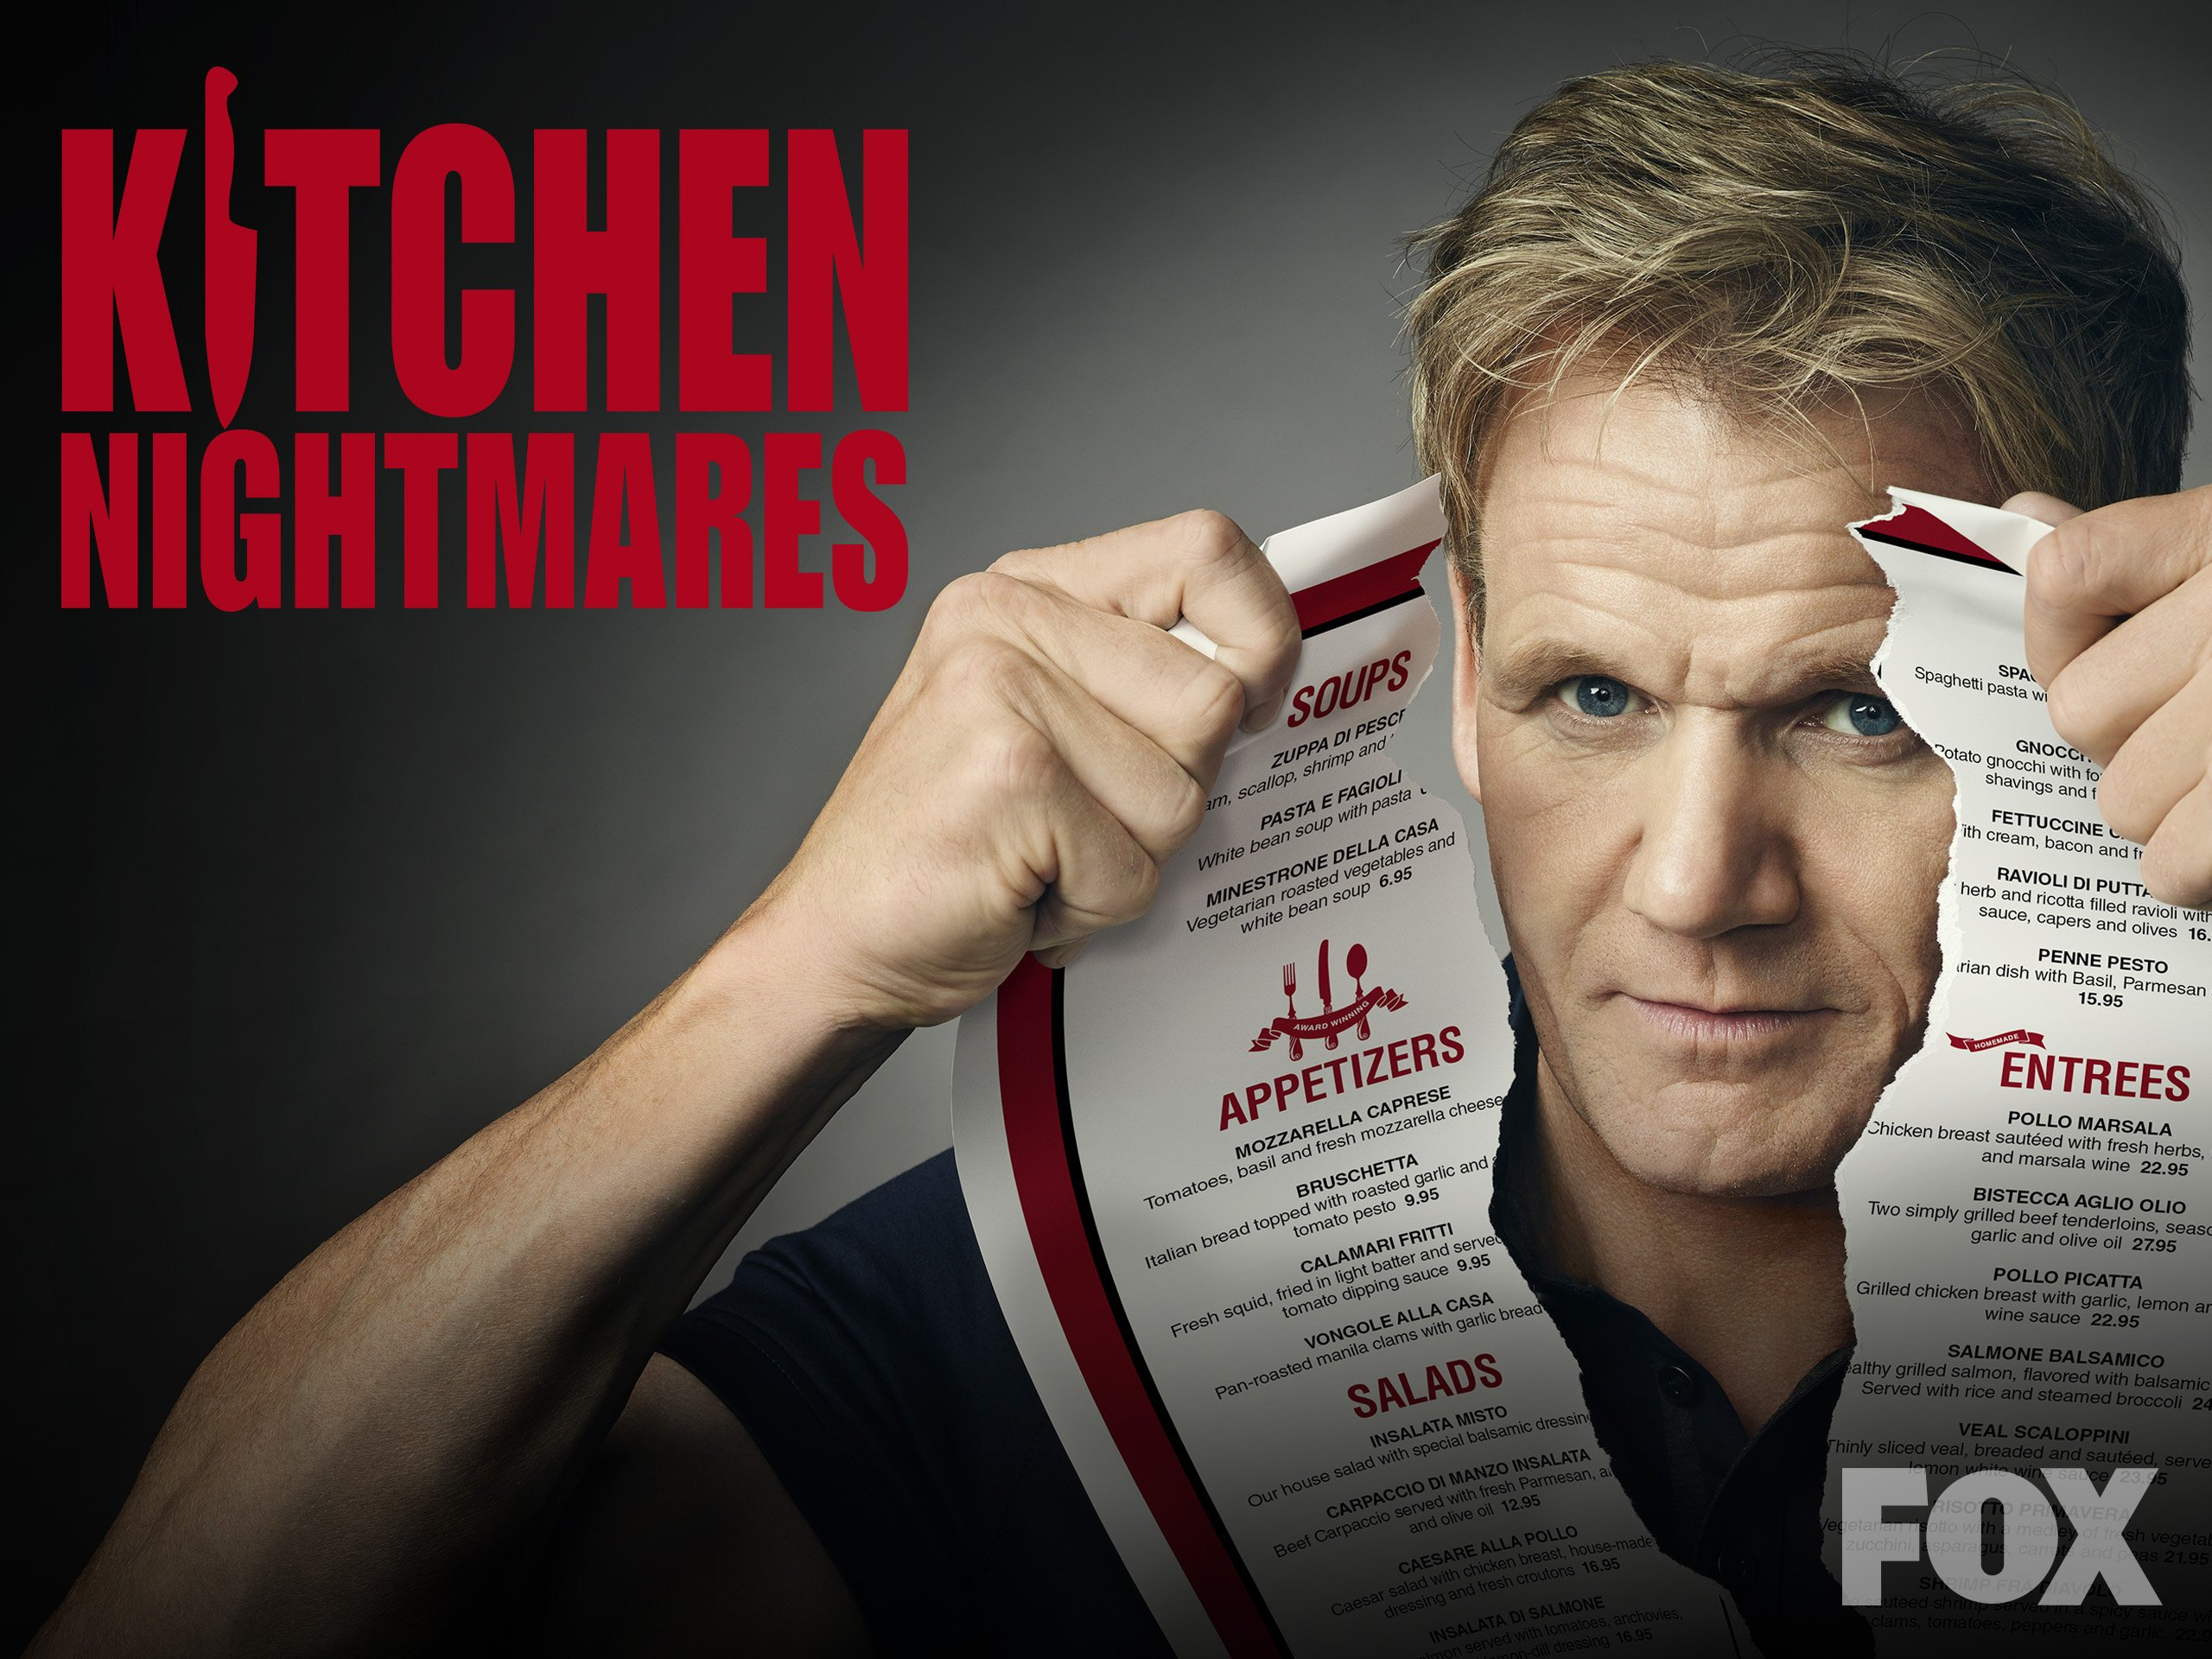 amazon com watch kitchen nightmares season 7 prime video rh amazon com